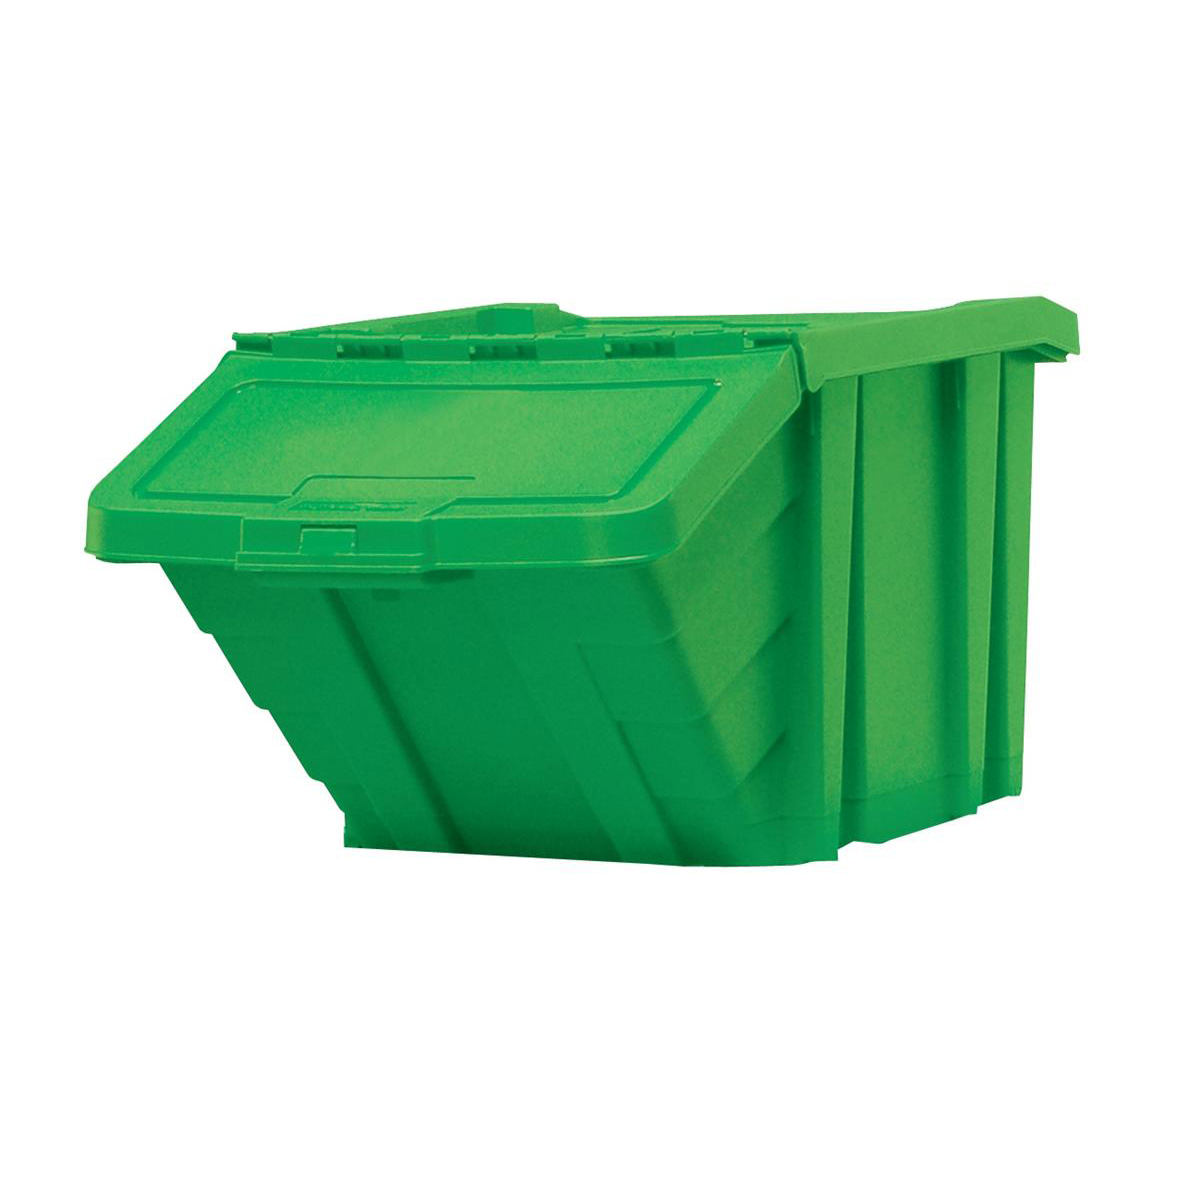 Recycle Storage Bin and Lid Green 400x635x345mm